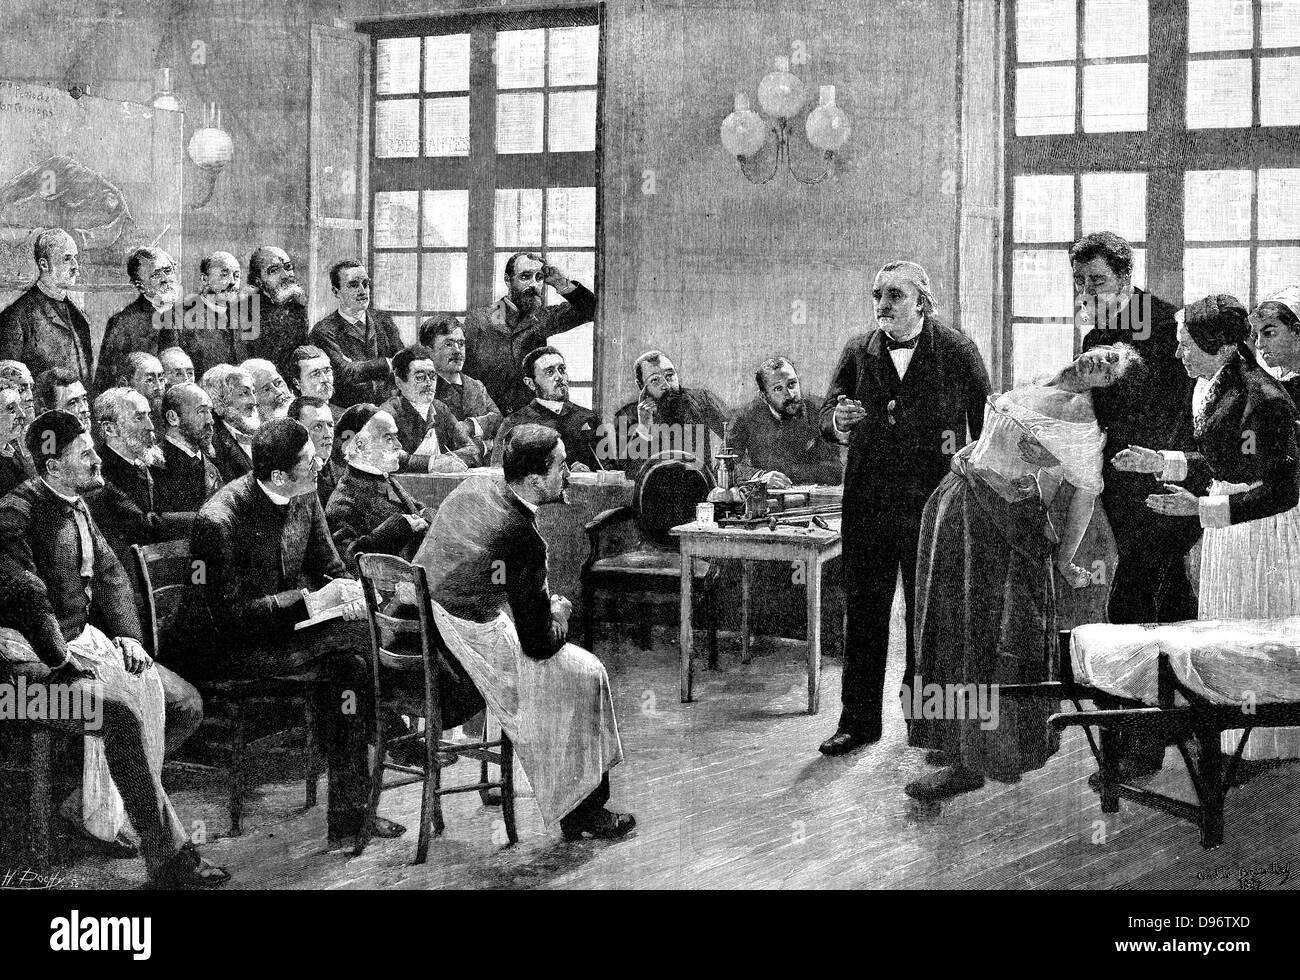 Jean Martin Charcot (1825-1893) giving a clinical lecture at the  Salpetriere. Engraving after painting by Andre Brouillet. Dr